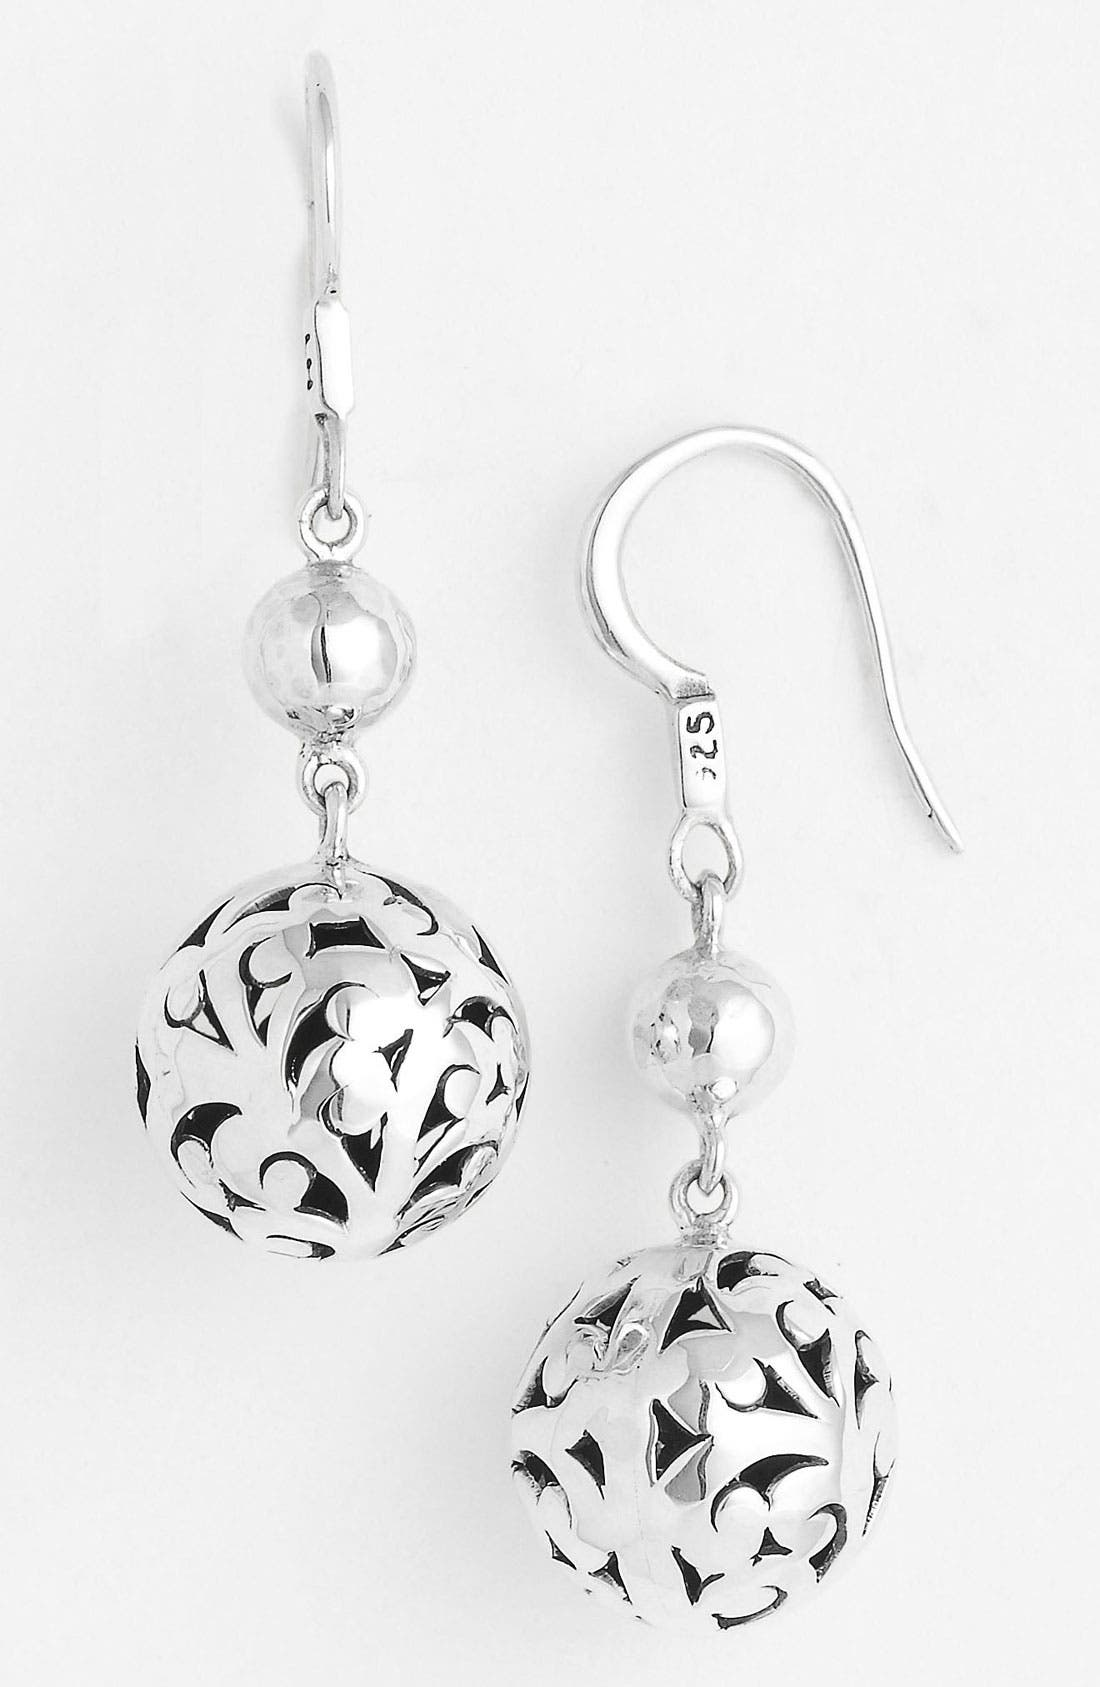 Alternate Image 1 Selected - Lois Hill 'Ball & Chain' Bead Earrings